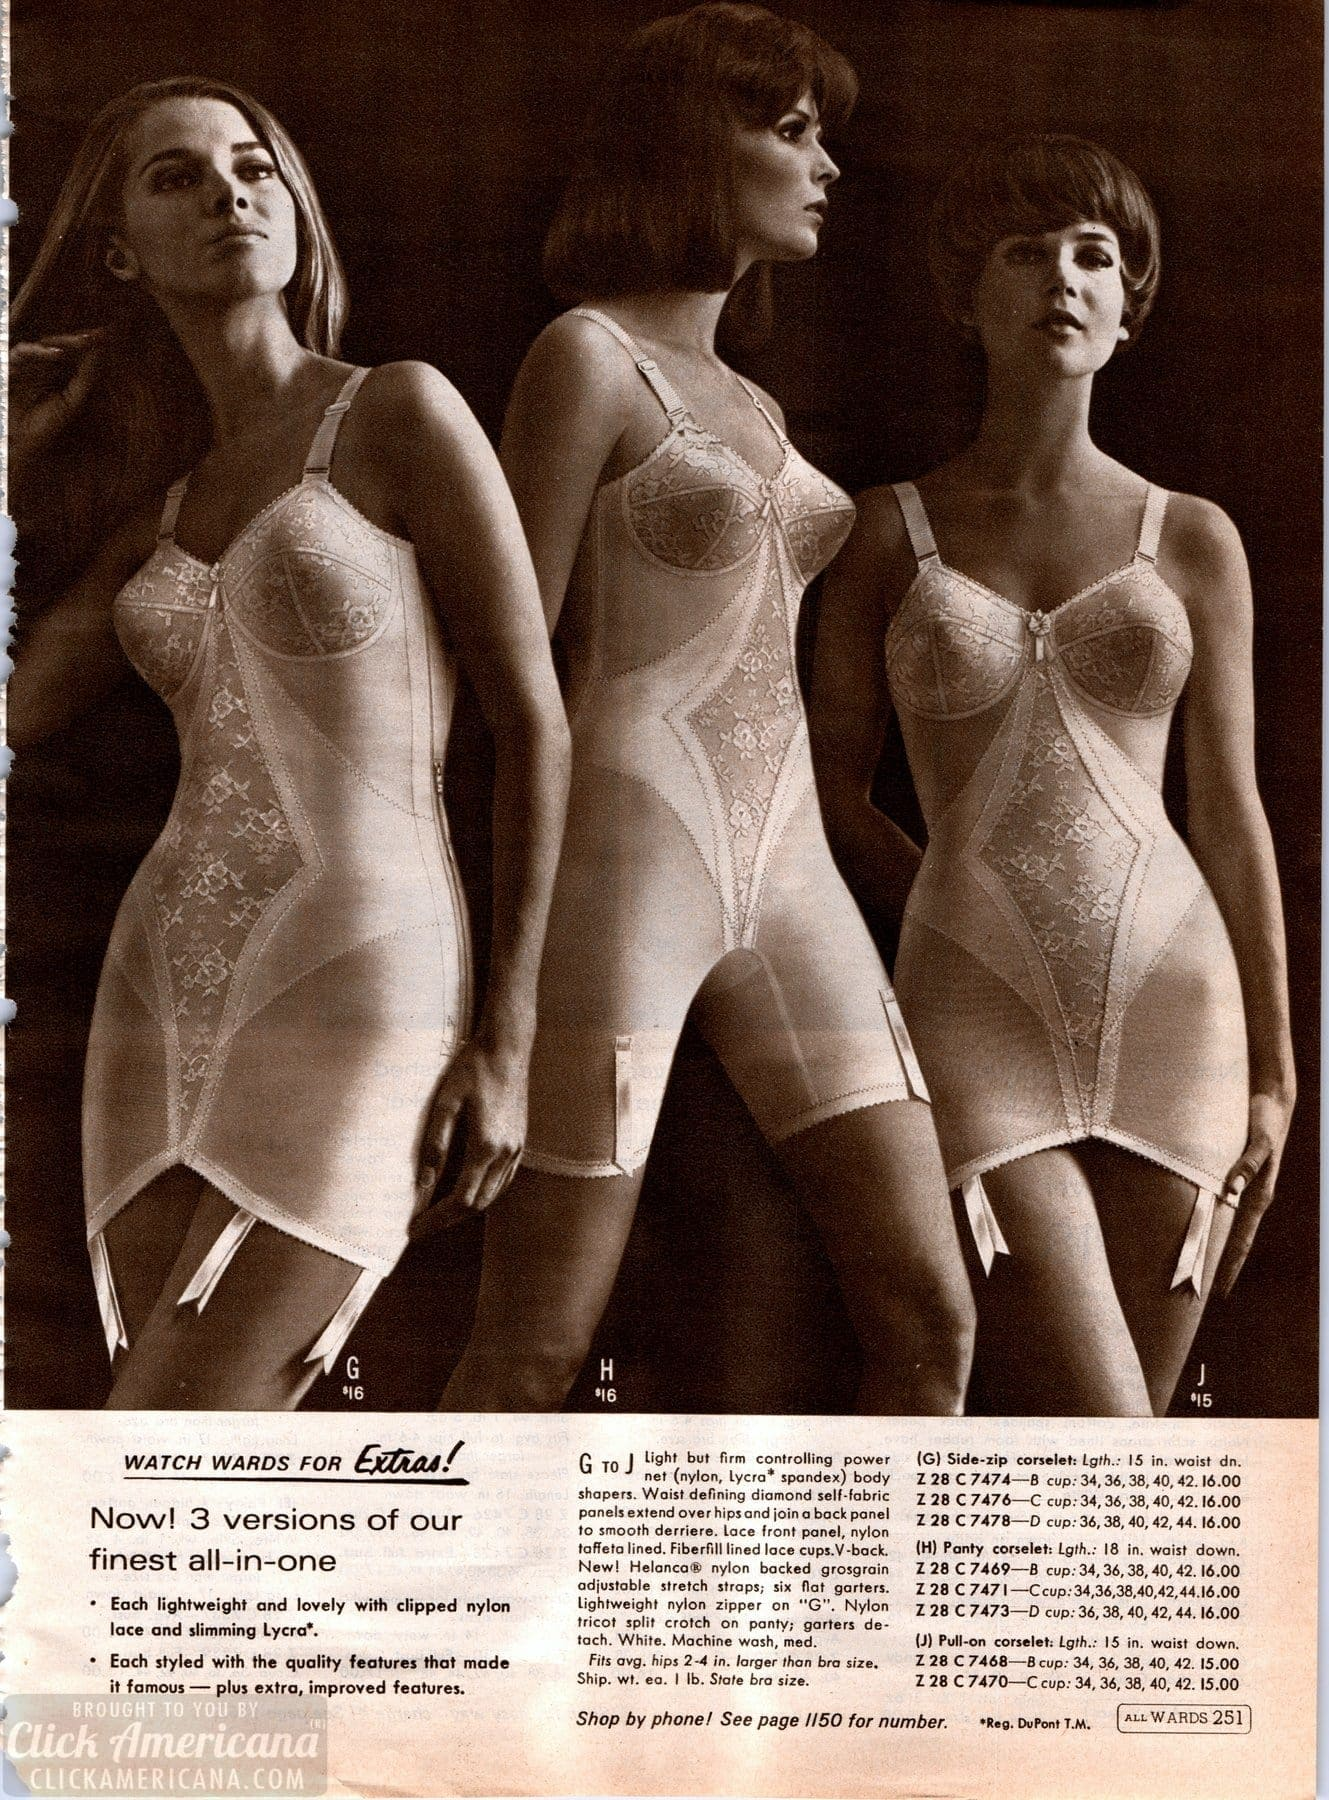 bd4aa02604c Retro  60s lingerie - corselets foundation garments - Click Americana